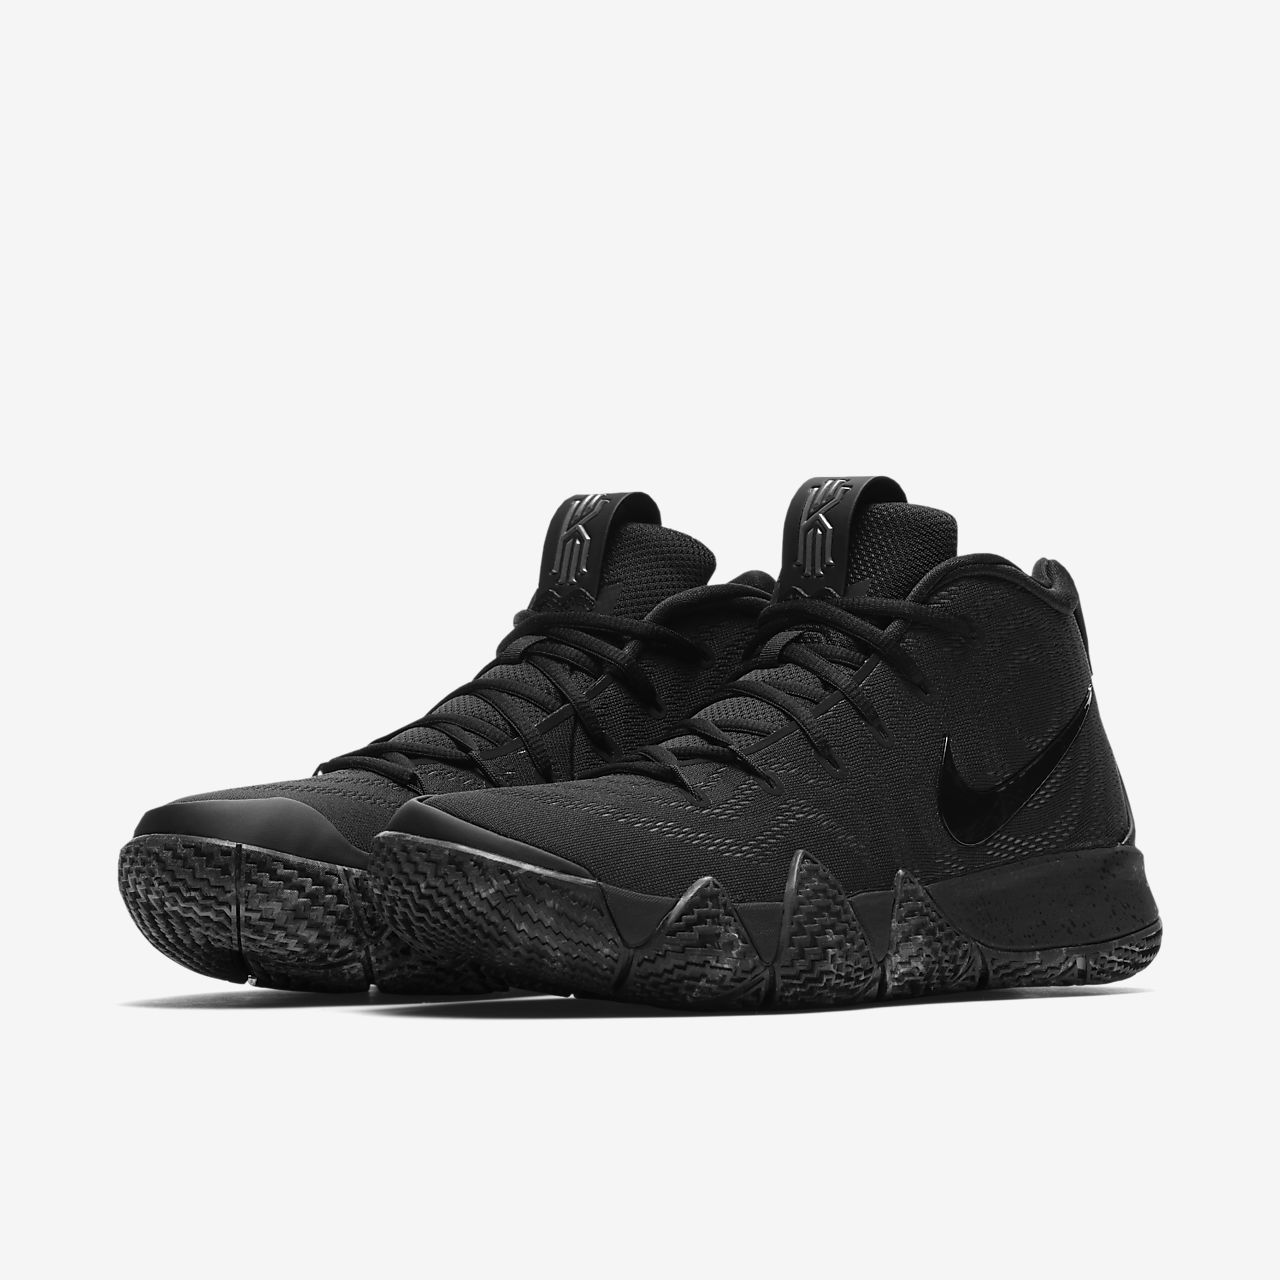 218b3a068624 Low Resolution Kyrie 4 Basketbol Ayakkabısı Kyrie 4 Basketbol Ayakkabısı